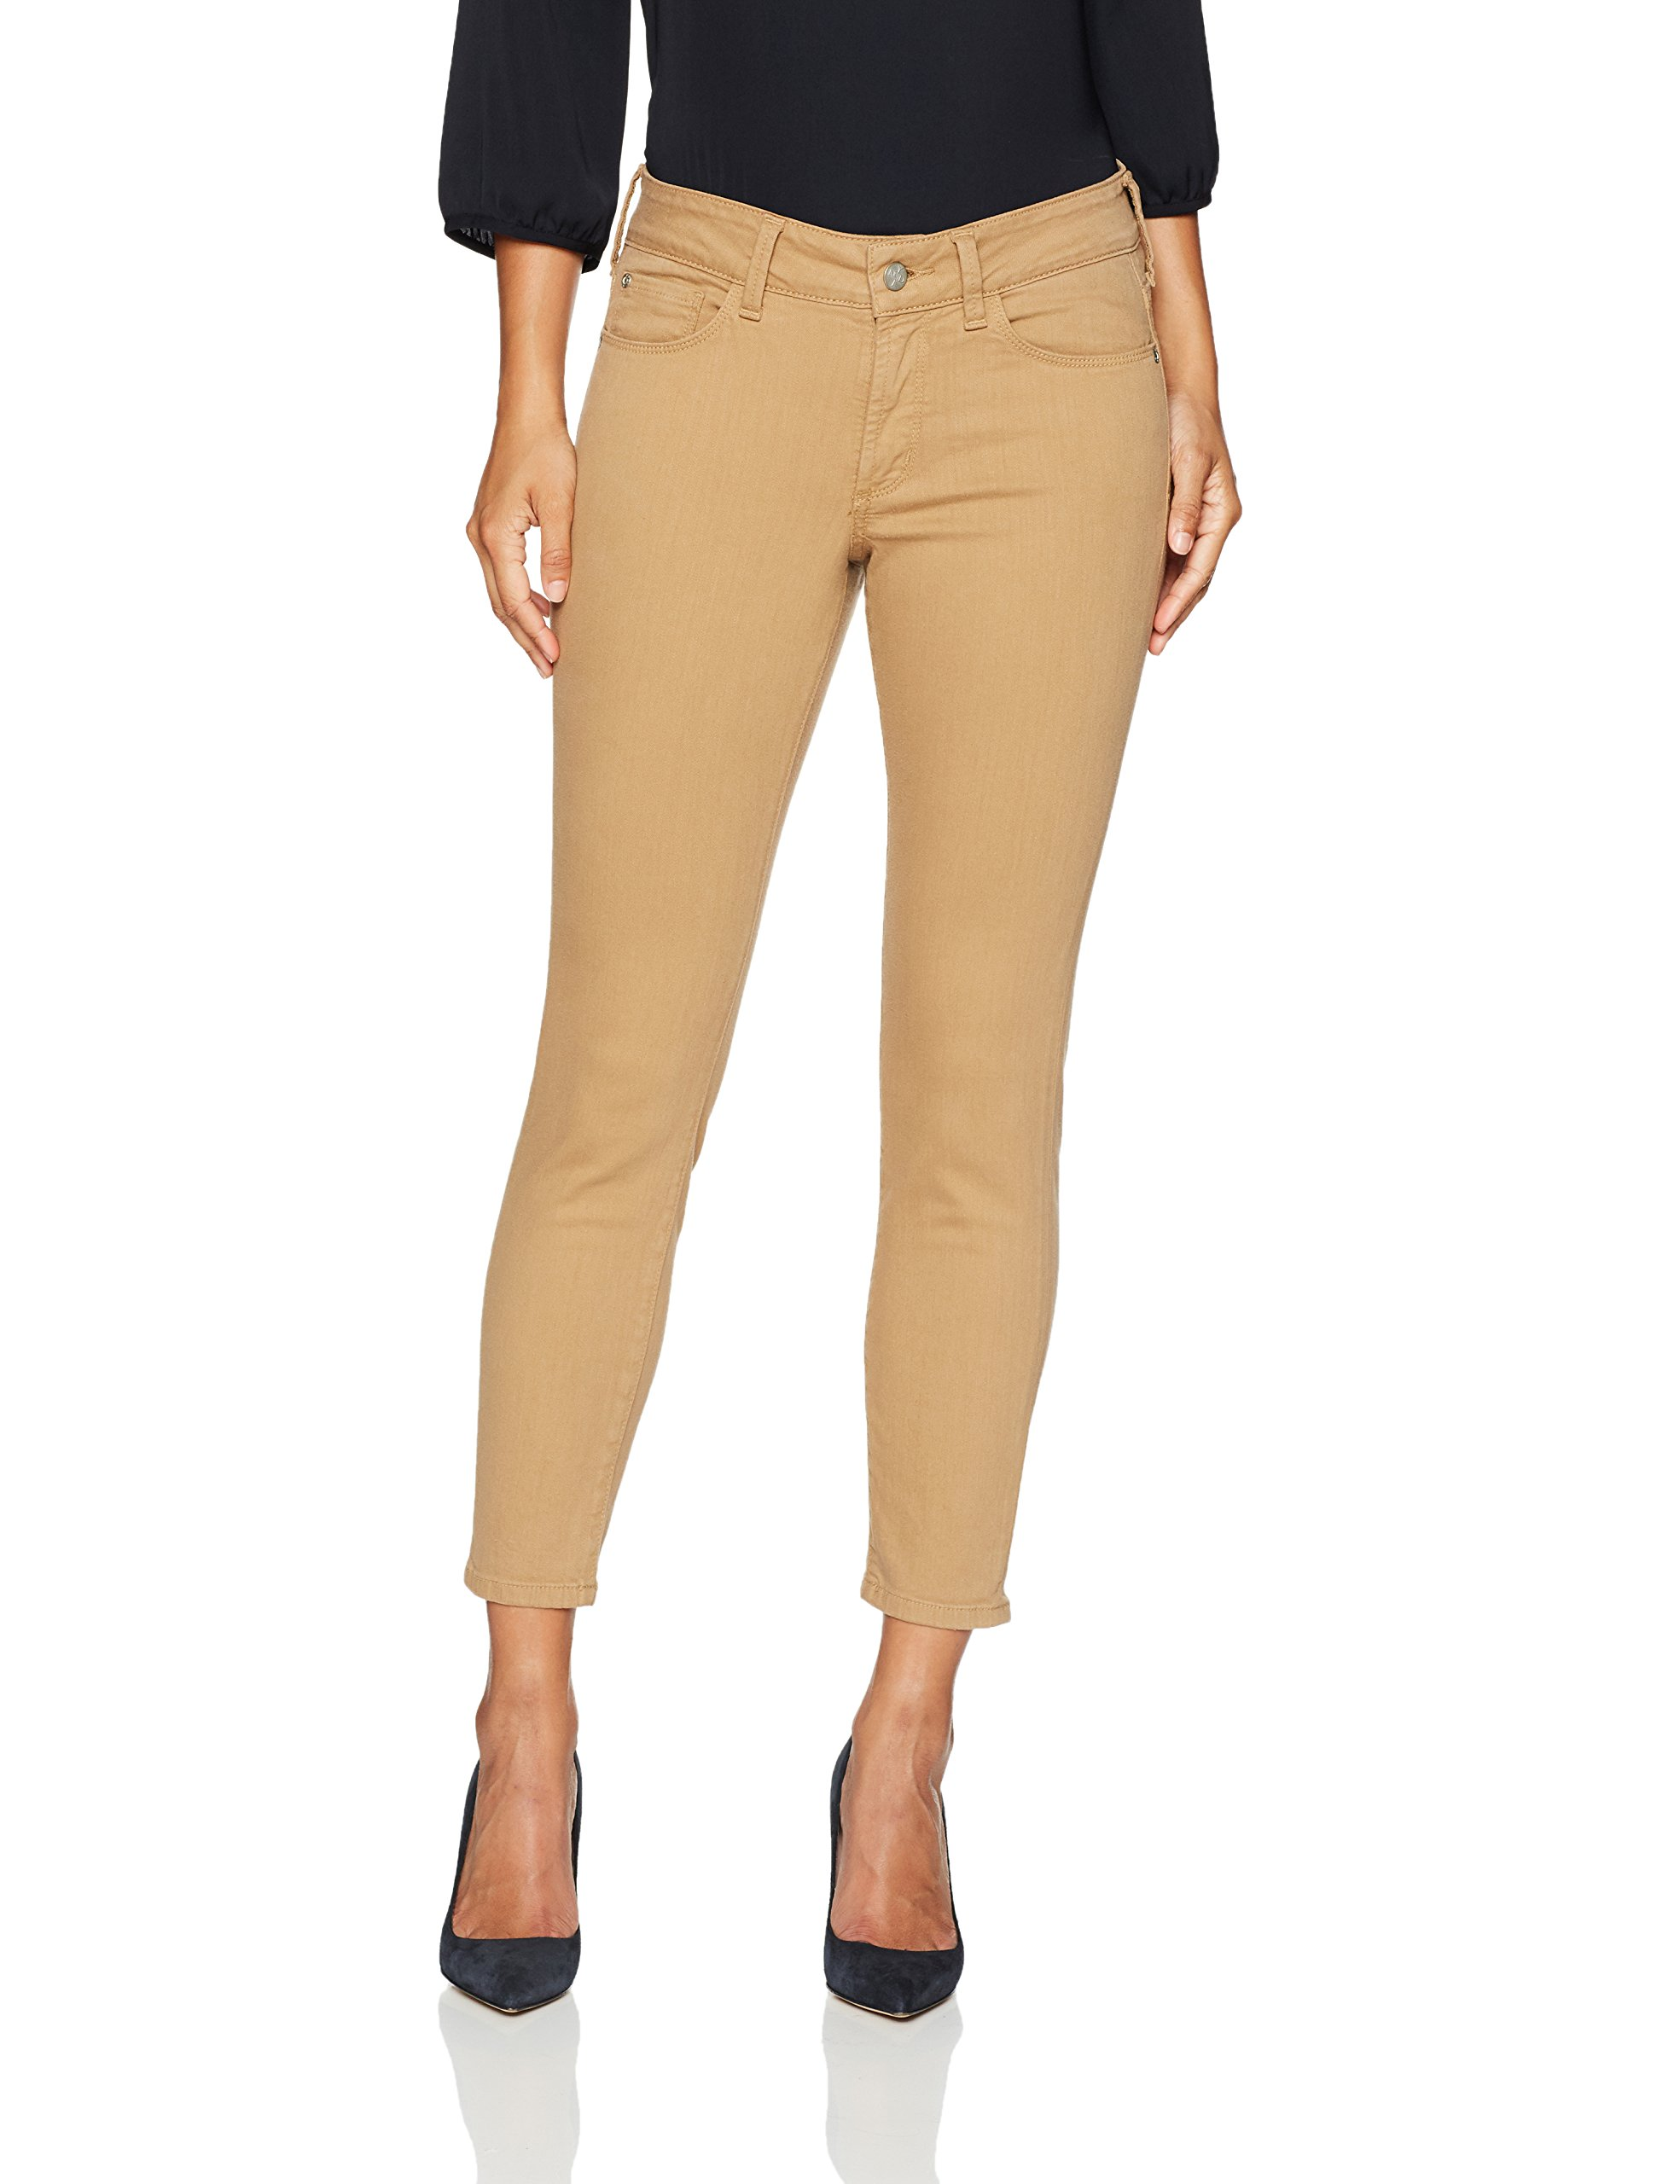 NYDJ Women's Petite Size Alina Skinny Convertible Ankle Jeans, Sepia, 8P